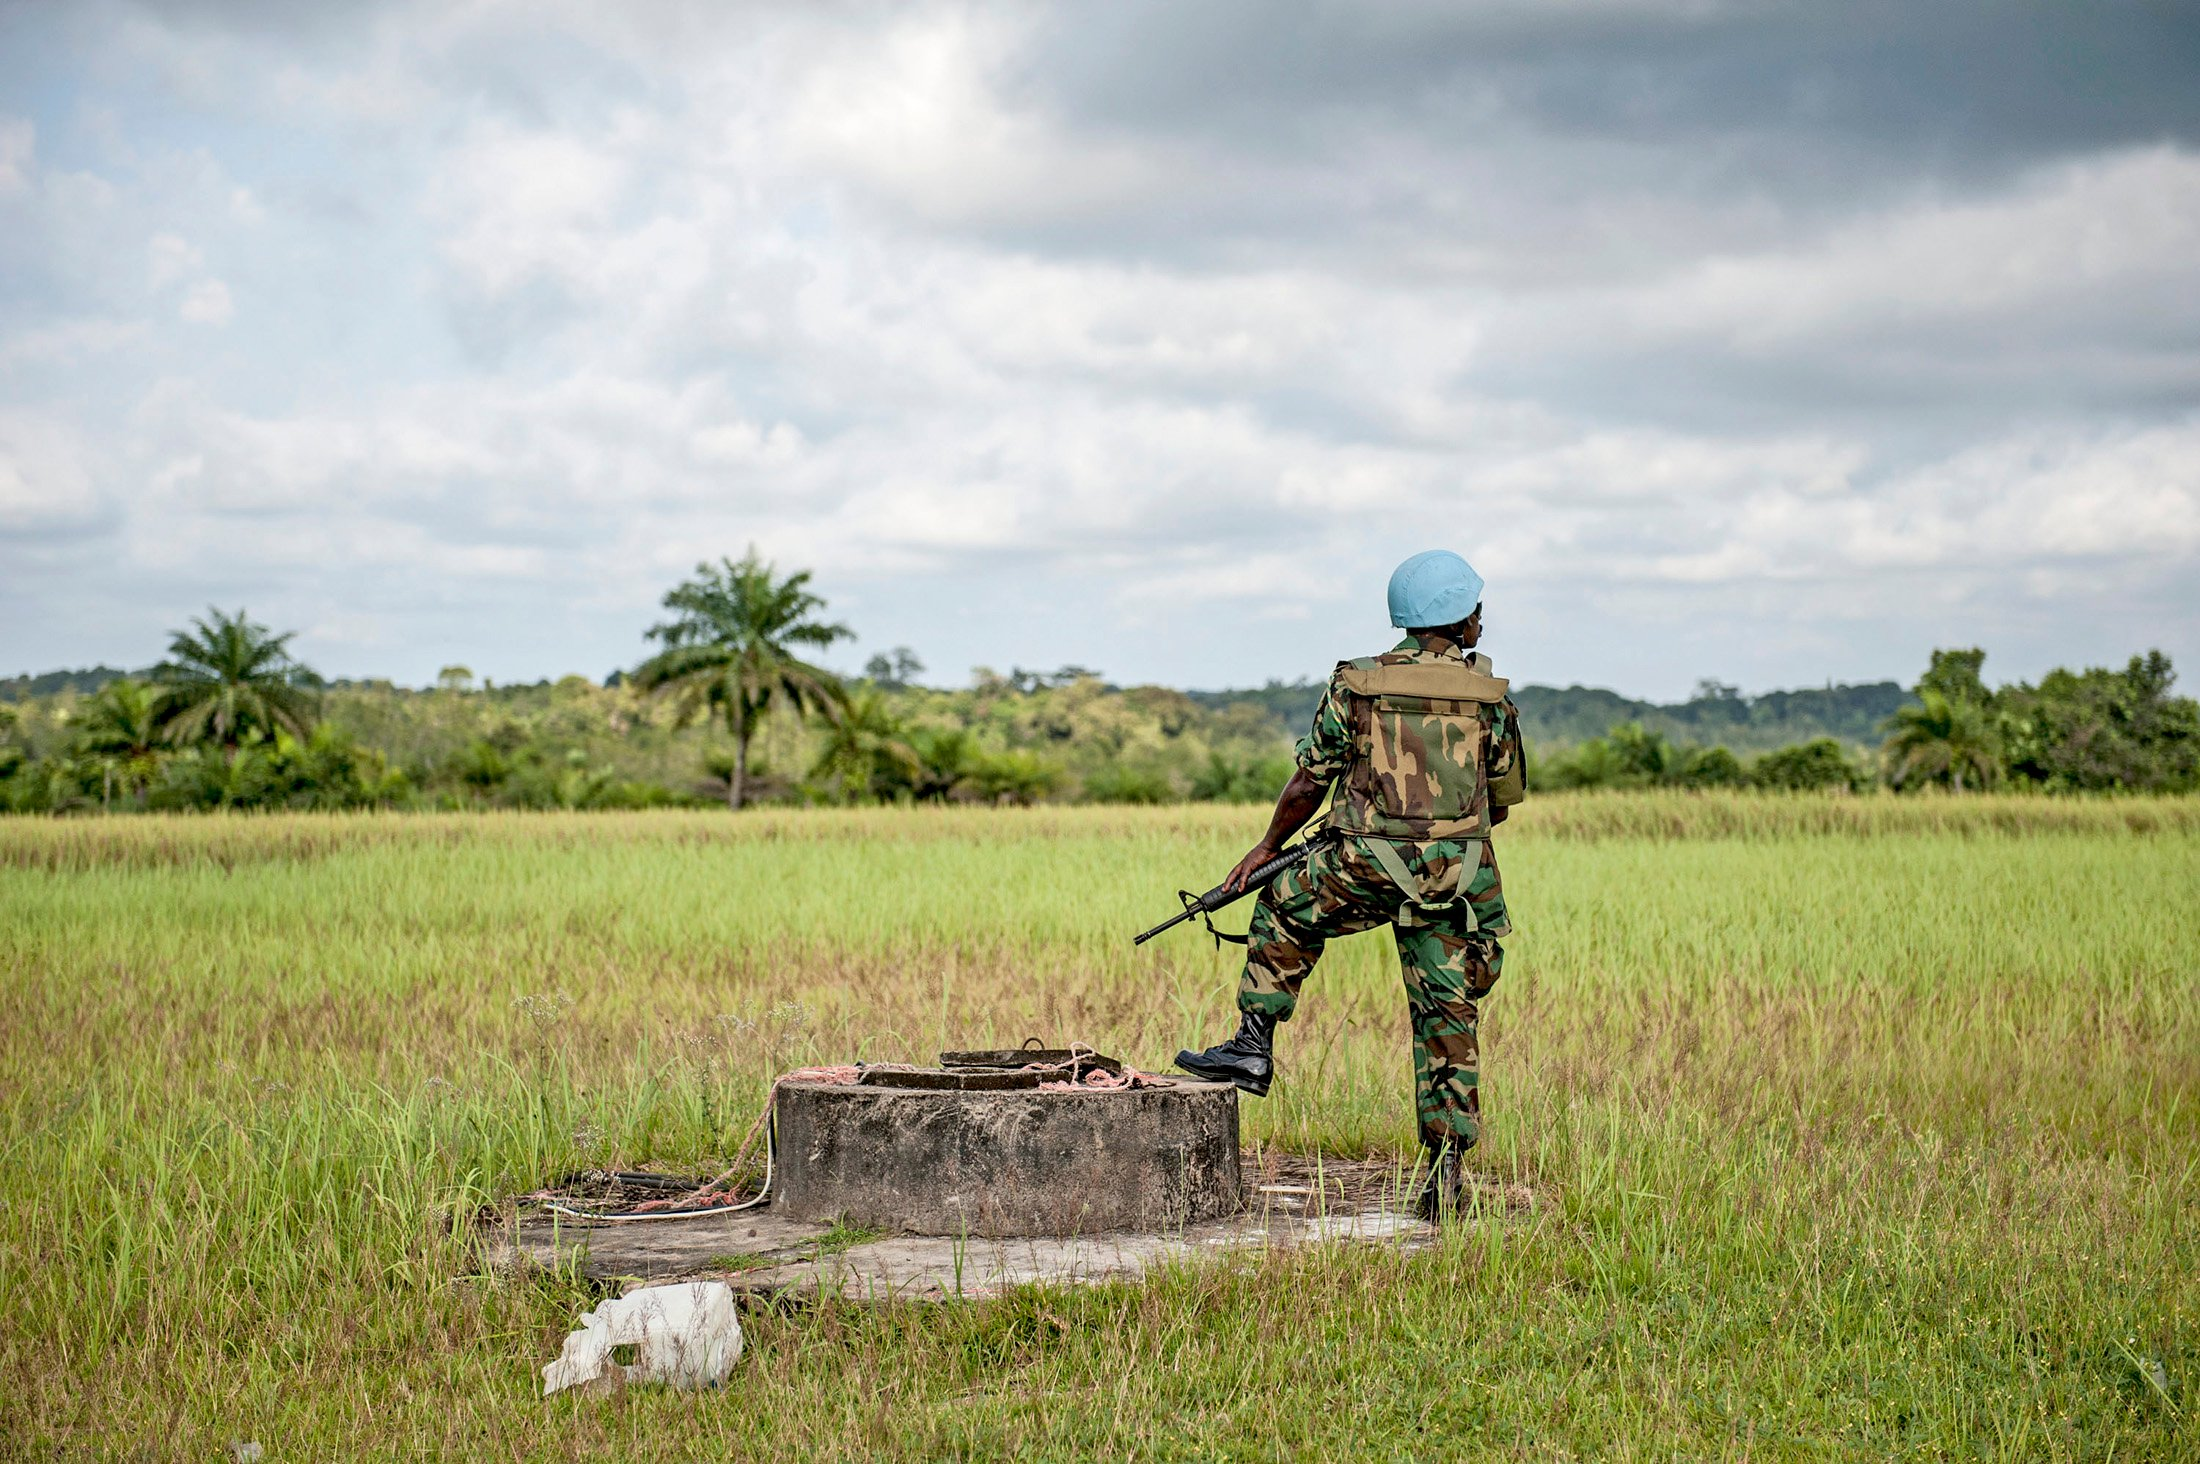 an analysis of the united nations reforms Peacekeeping needs reform, not just reinforcement without crucial structural reforms analysis peacekeeping, united nations.